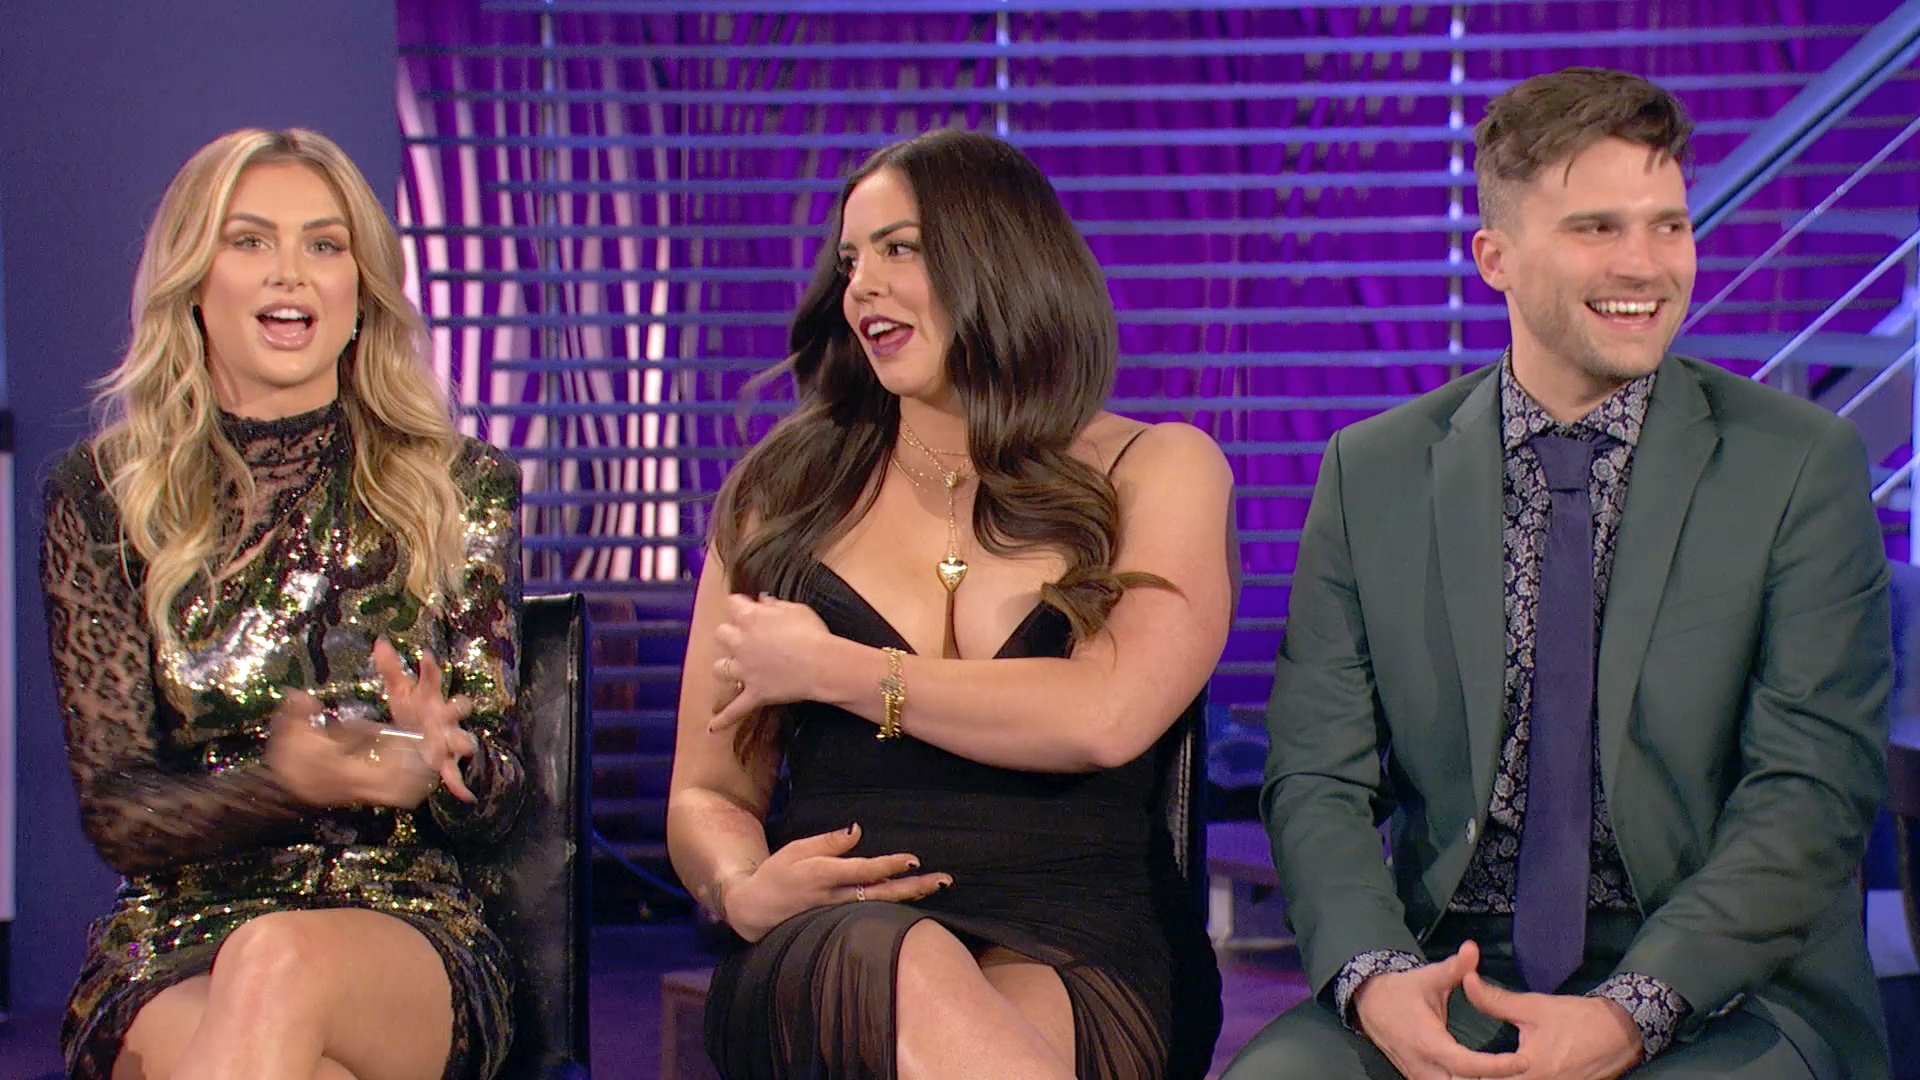 Which Other Bravo Show Would the Cast of Vanderpump Rules Join?